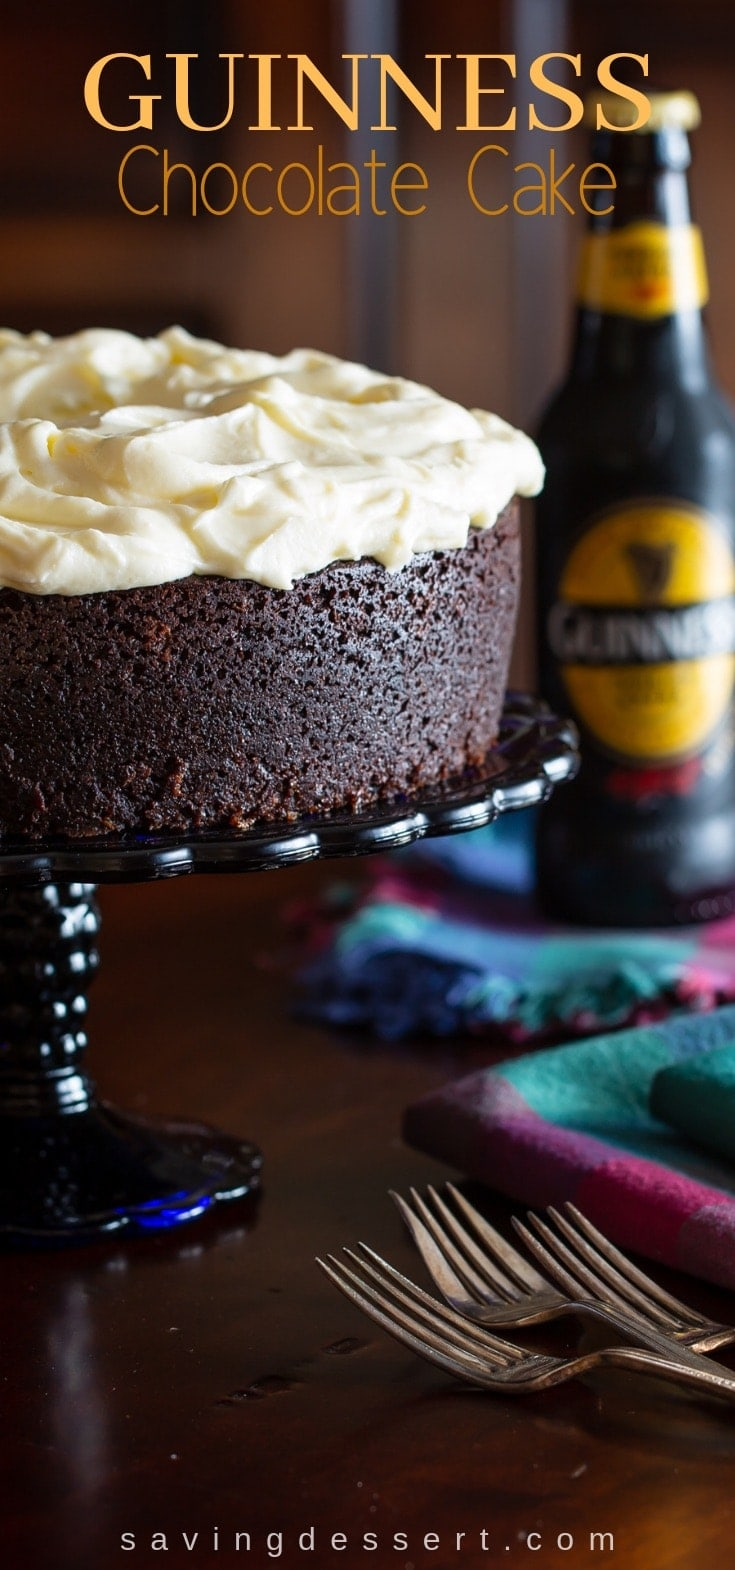 Guinness Chocolate Cake - A lightly sweet and moist chocolate cake, with wonderfully interesting spicy notes from the stout Guinness Foreign Extra Beer. Perfect for St. Patrick's Day or for the chocolate lover in your home! #stoutcake #guinnesschocolatecake #guinnesscake #guinness #cake #stpatricksday #chocolatecake